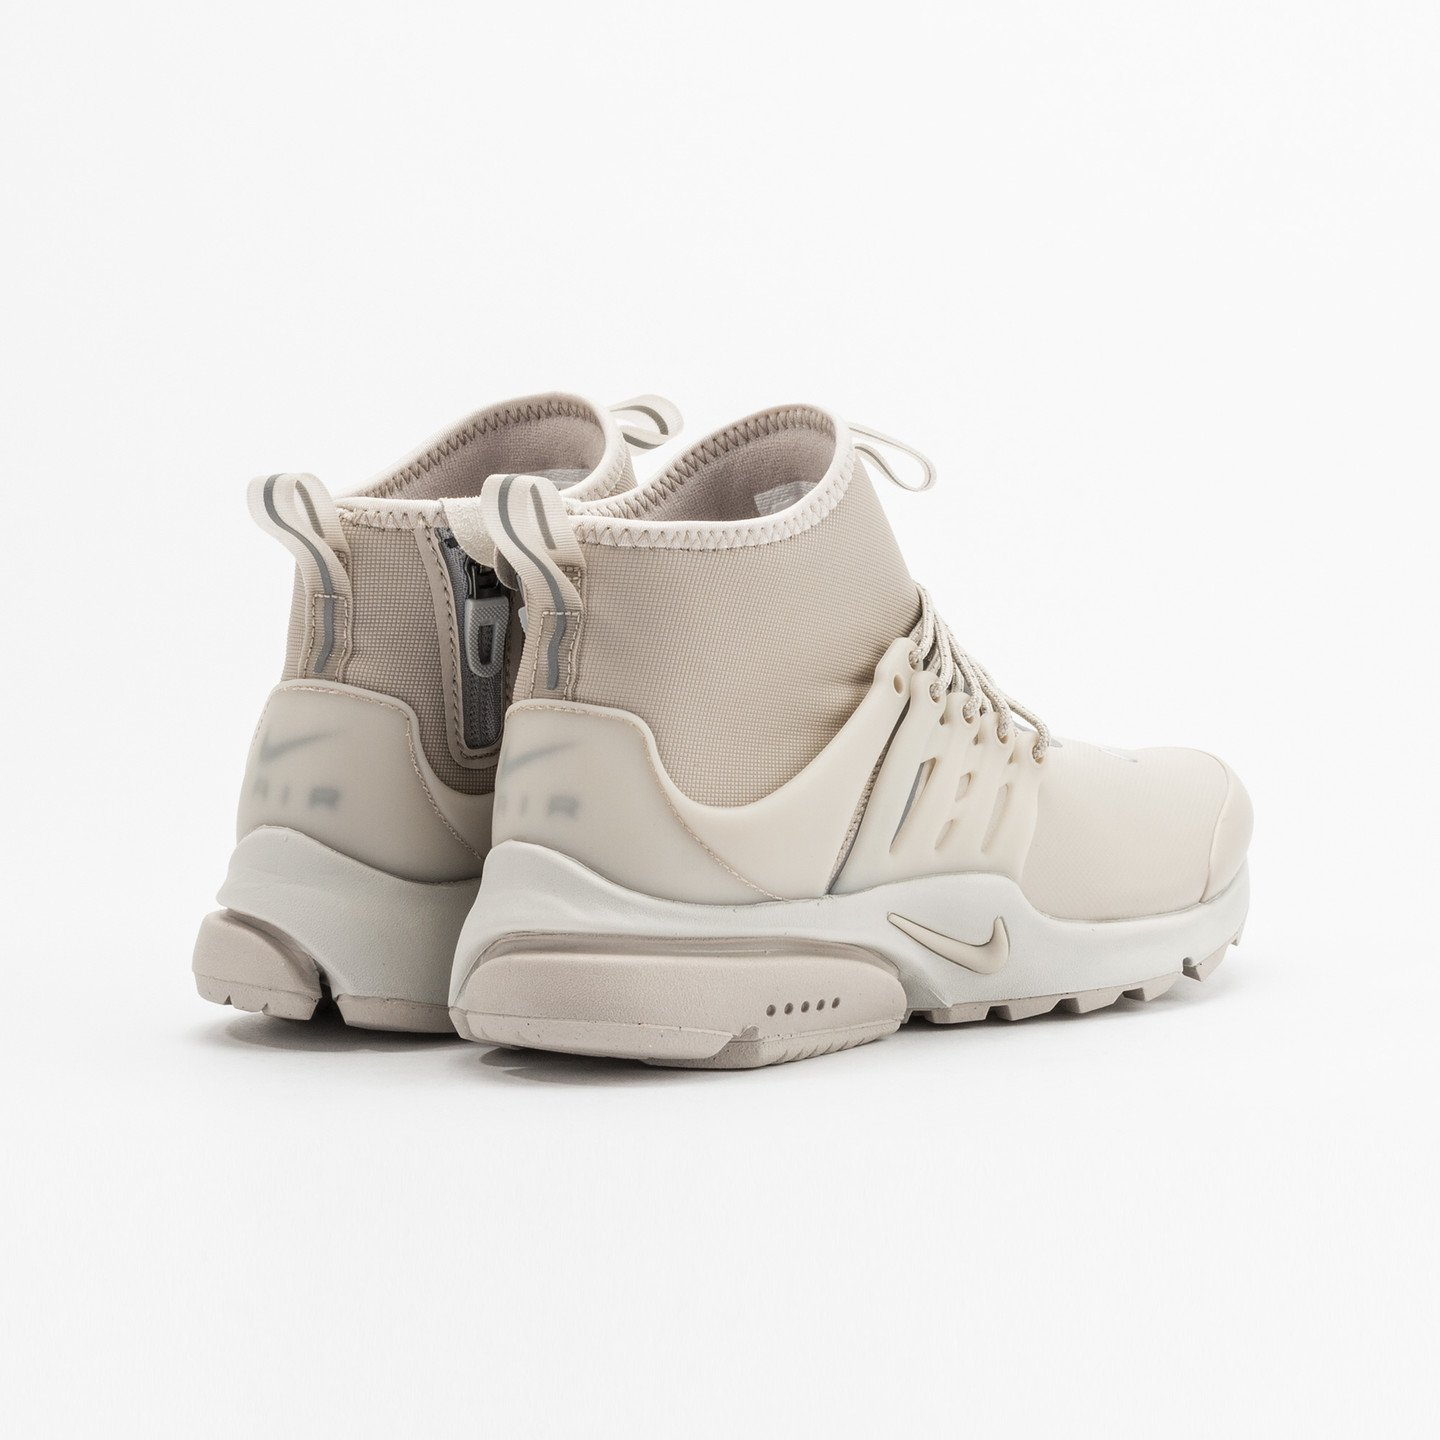 Nike Wmns Air Presto Mid Utility String / Reflect Silver 859527-200